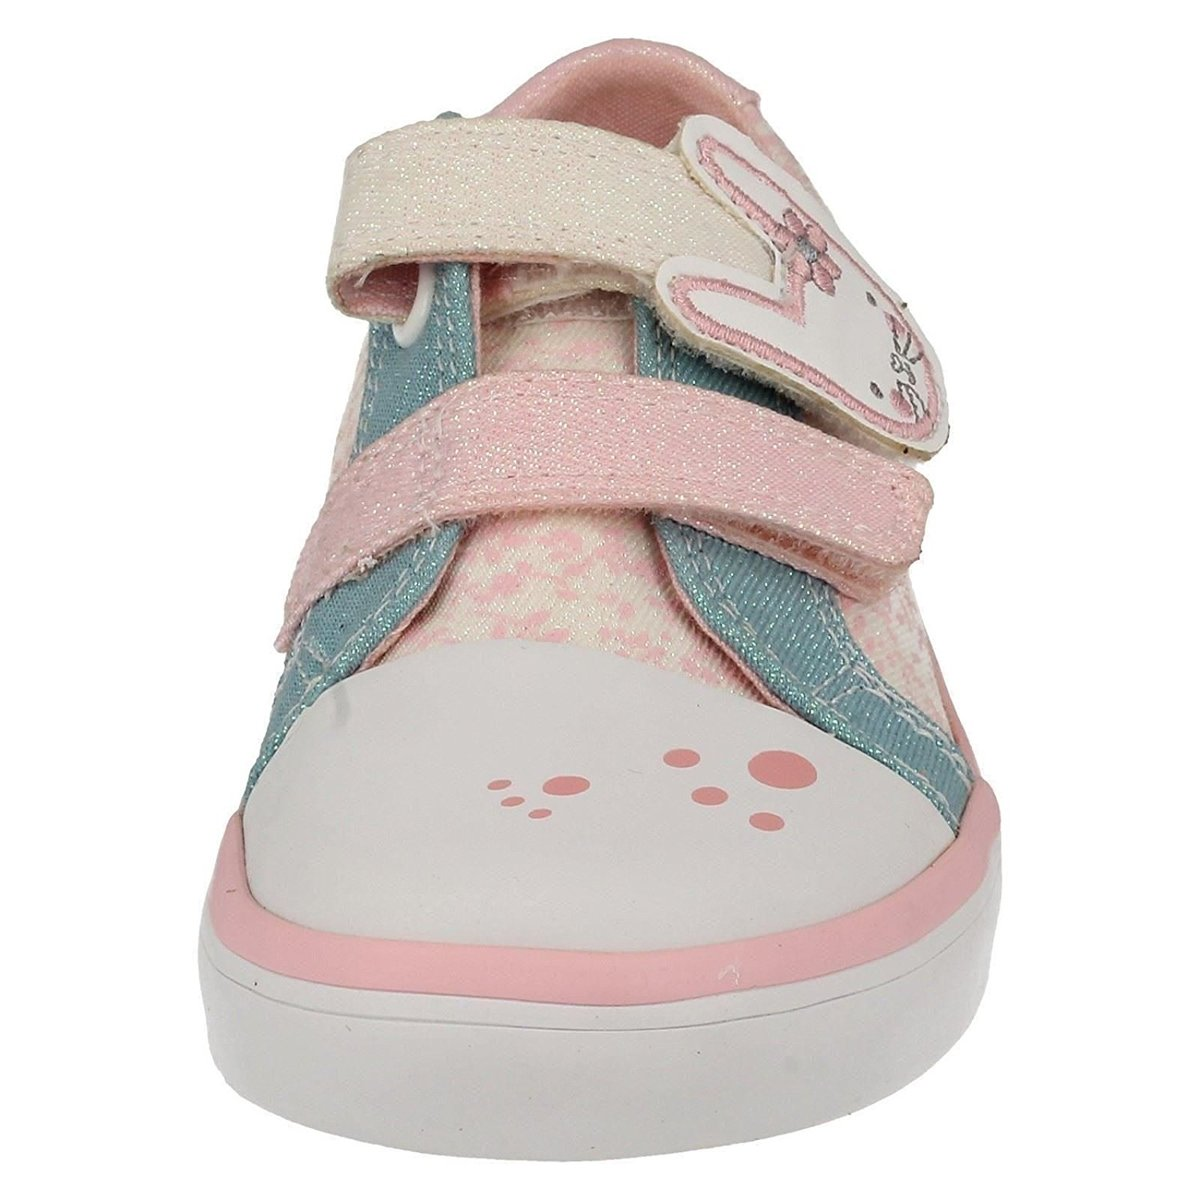 d8dbab33281c Clarks Trainers - Off white multi - 1502 57G GRACIE BEA INF